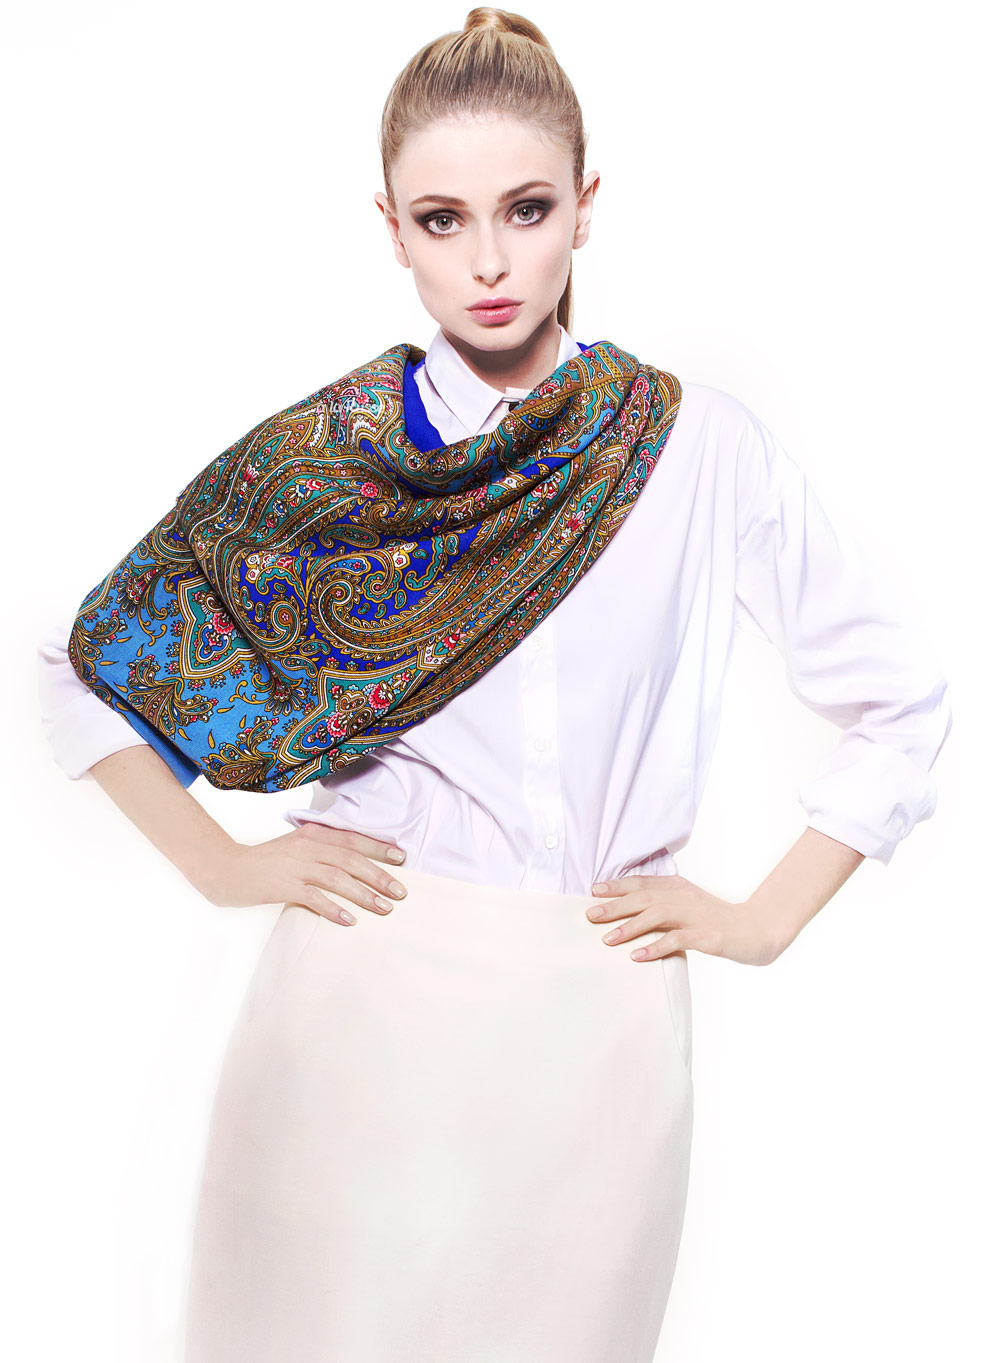 luxuriöse-tücher-luxustuch-luxusschal-luxury-shawl-scarf-blue-wolle-bohemian-floral